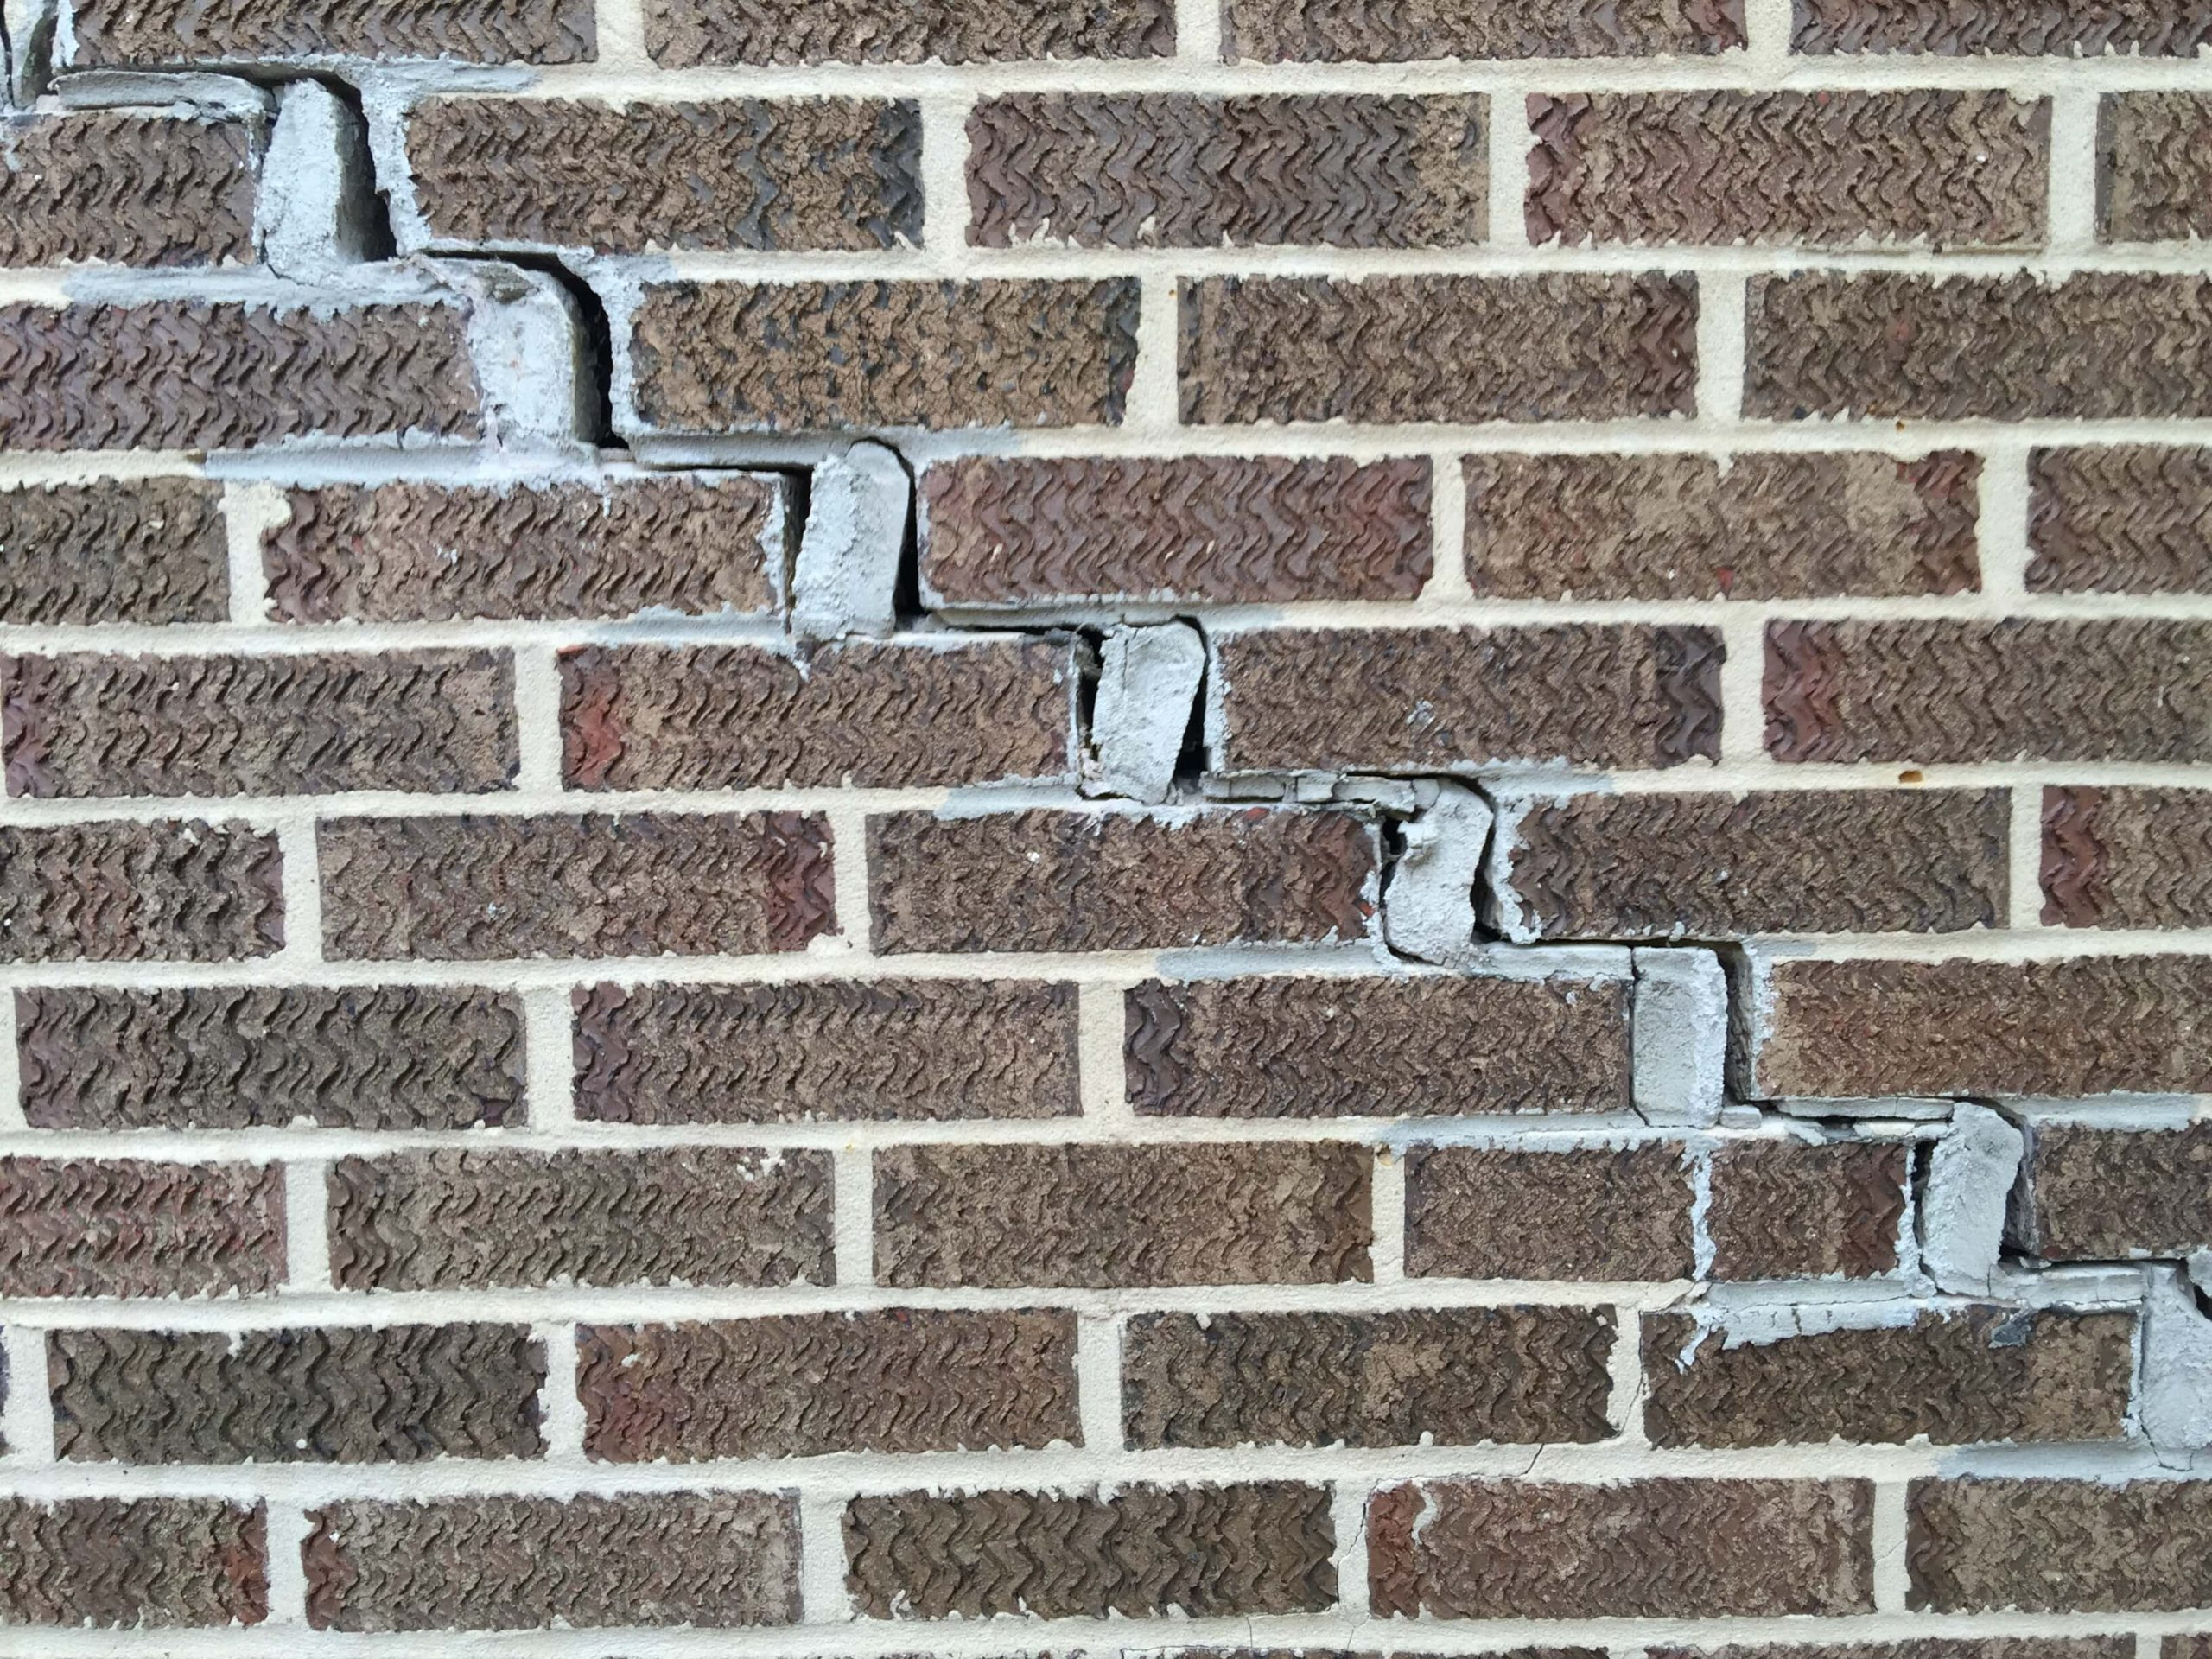 Stair Step Brick Cracks